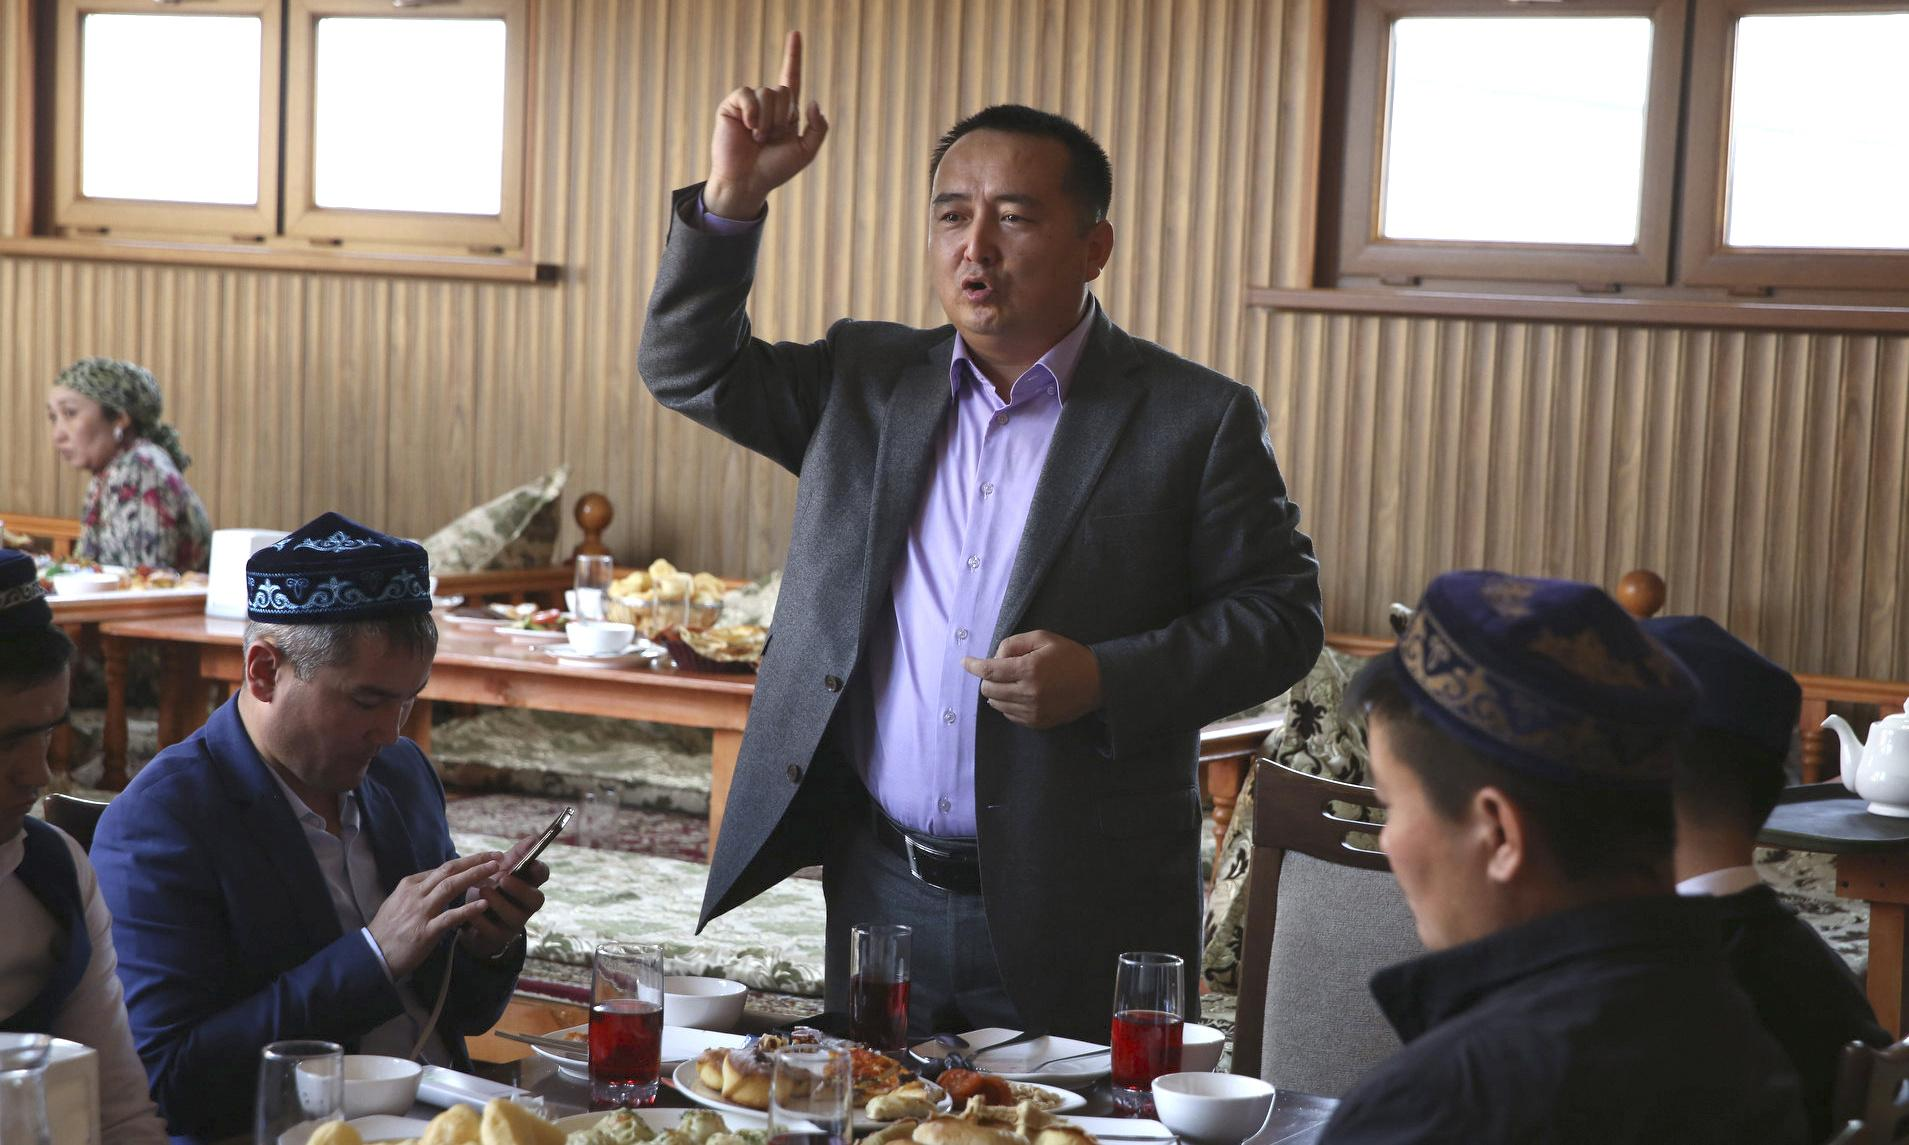 The Guardian view on Xinjiang's detention camps: not just China's shame